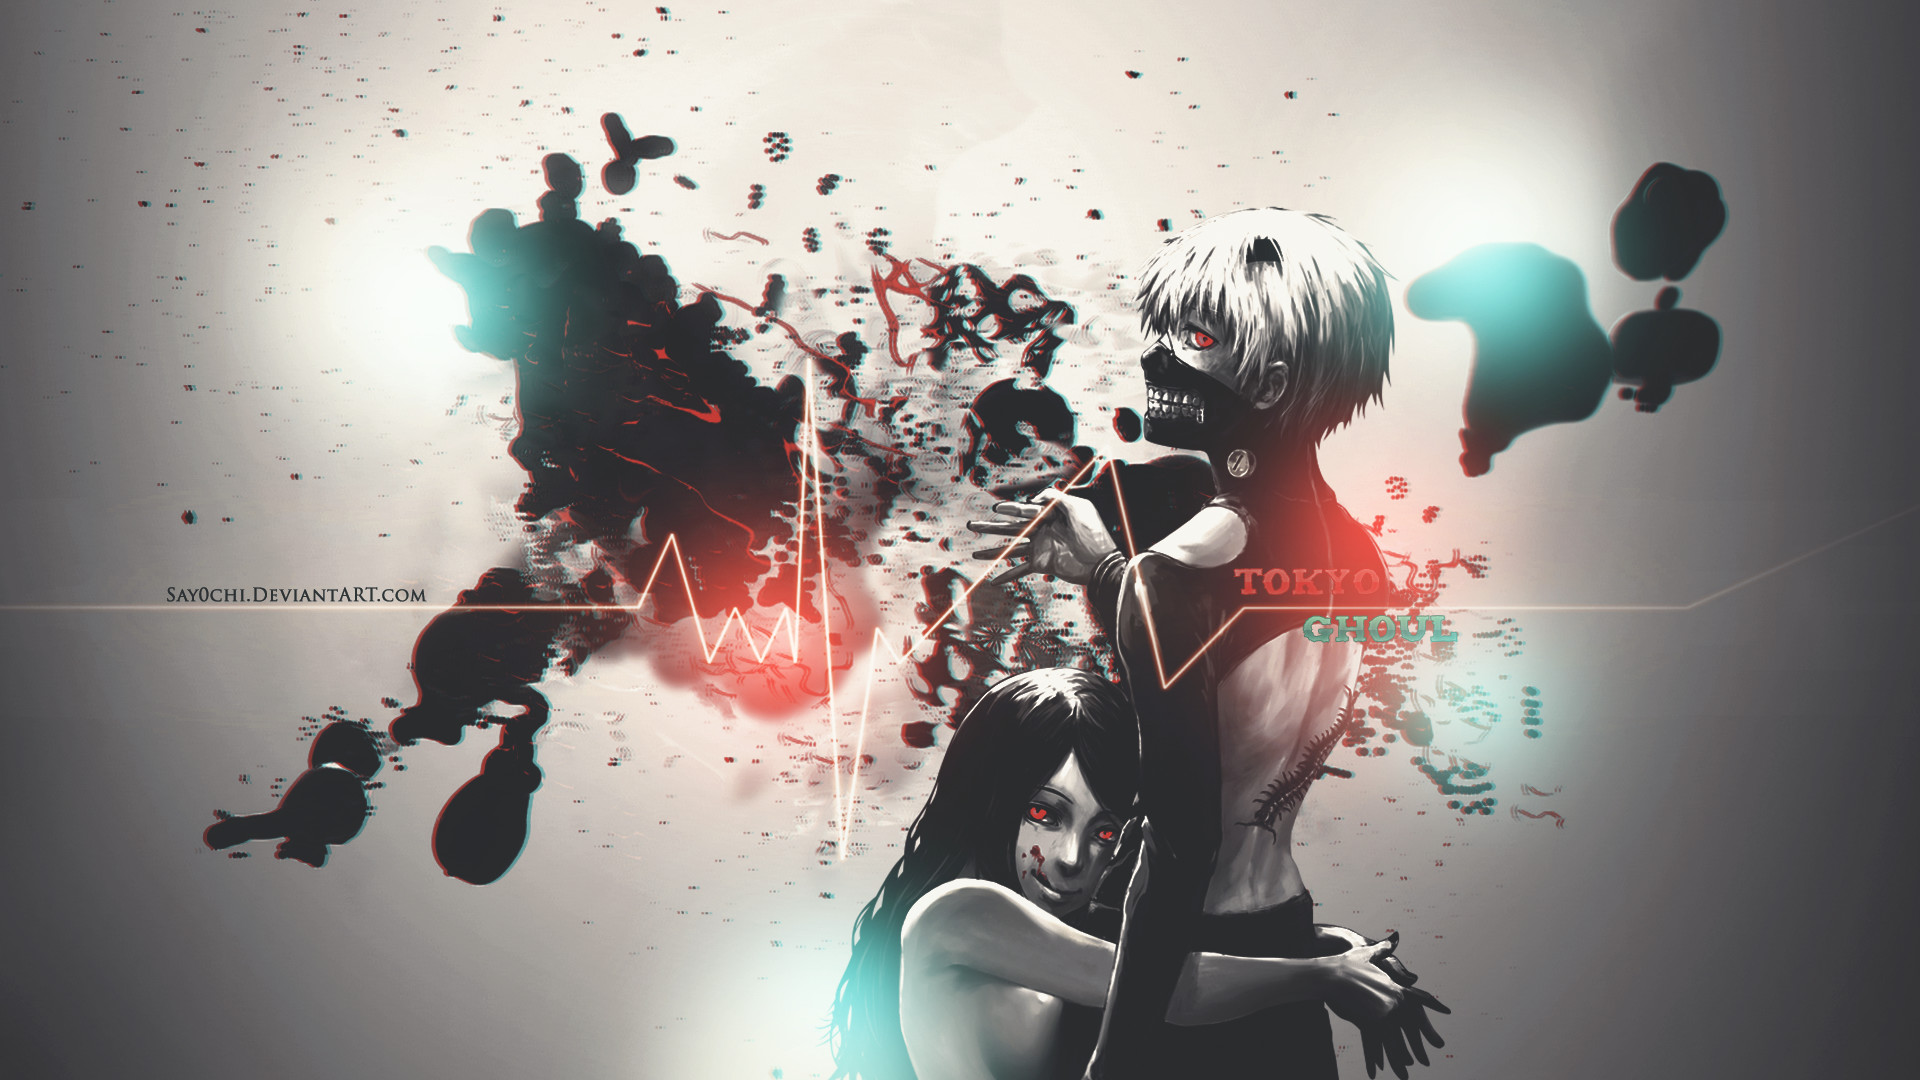 … Tokyo Ghoul Wallpaper 1920 x 1080 [HD] by Say0chi